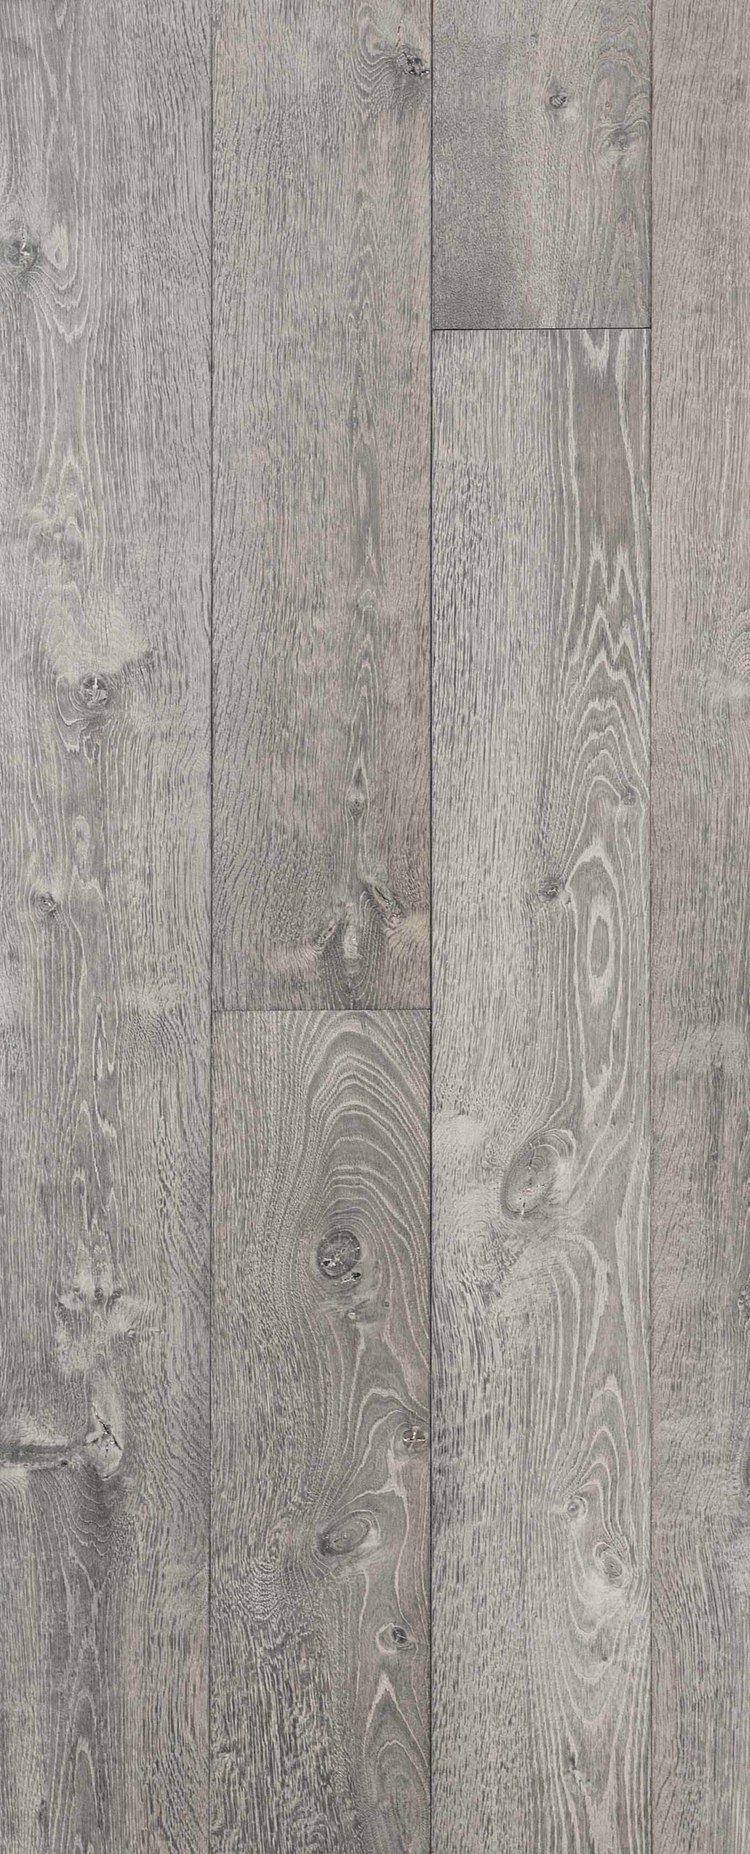 Grey Collection Walking On Wood Living Room Wood Floor Grey Wood Floors Grey Flooring